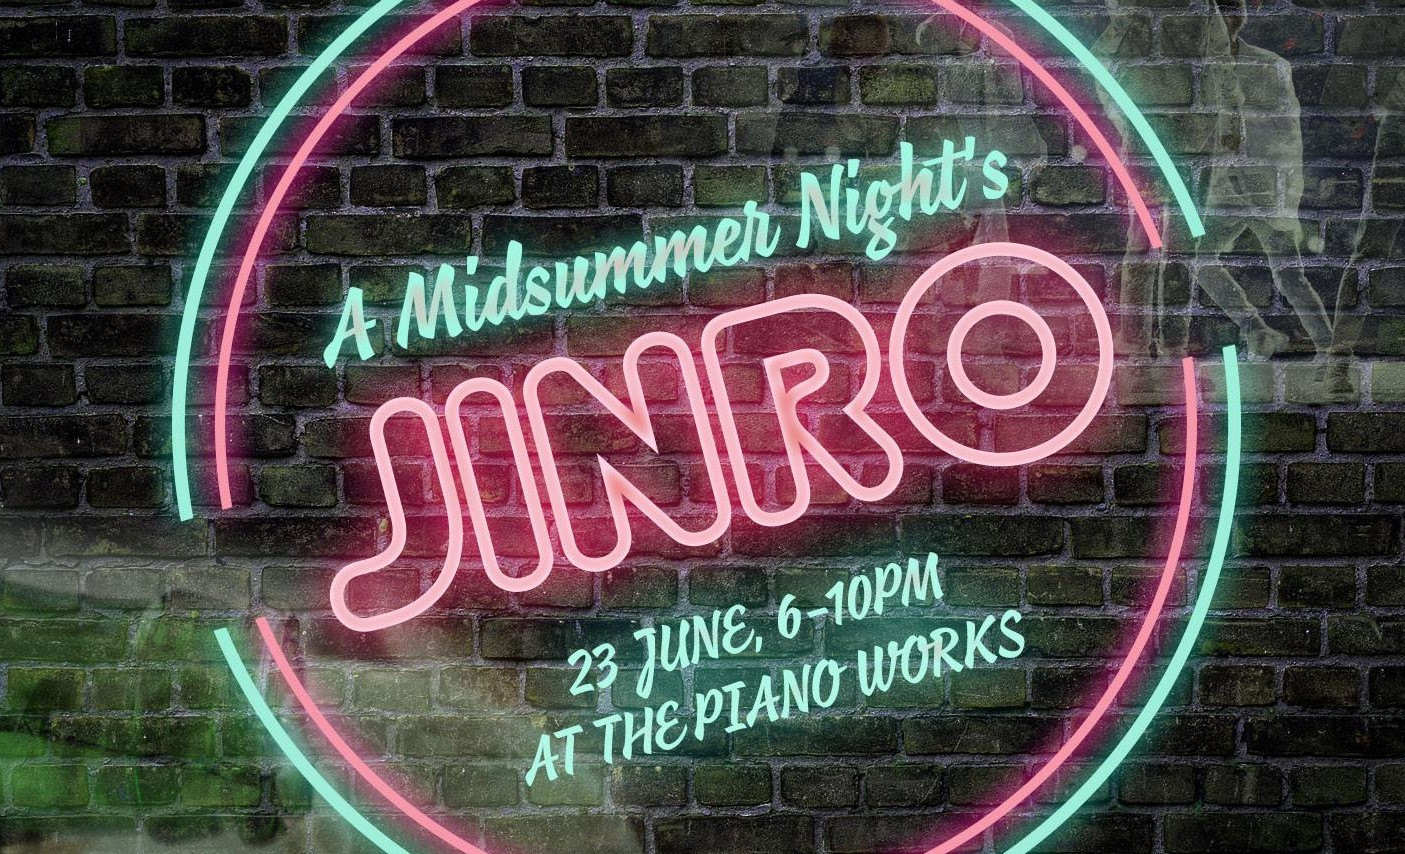 K-Music: A MIDSUMMER NIGHT'S JINRO    At the Piano Works  On 23rd June, 6pm